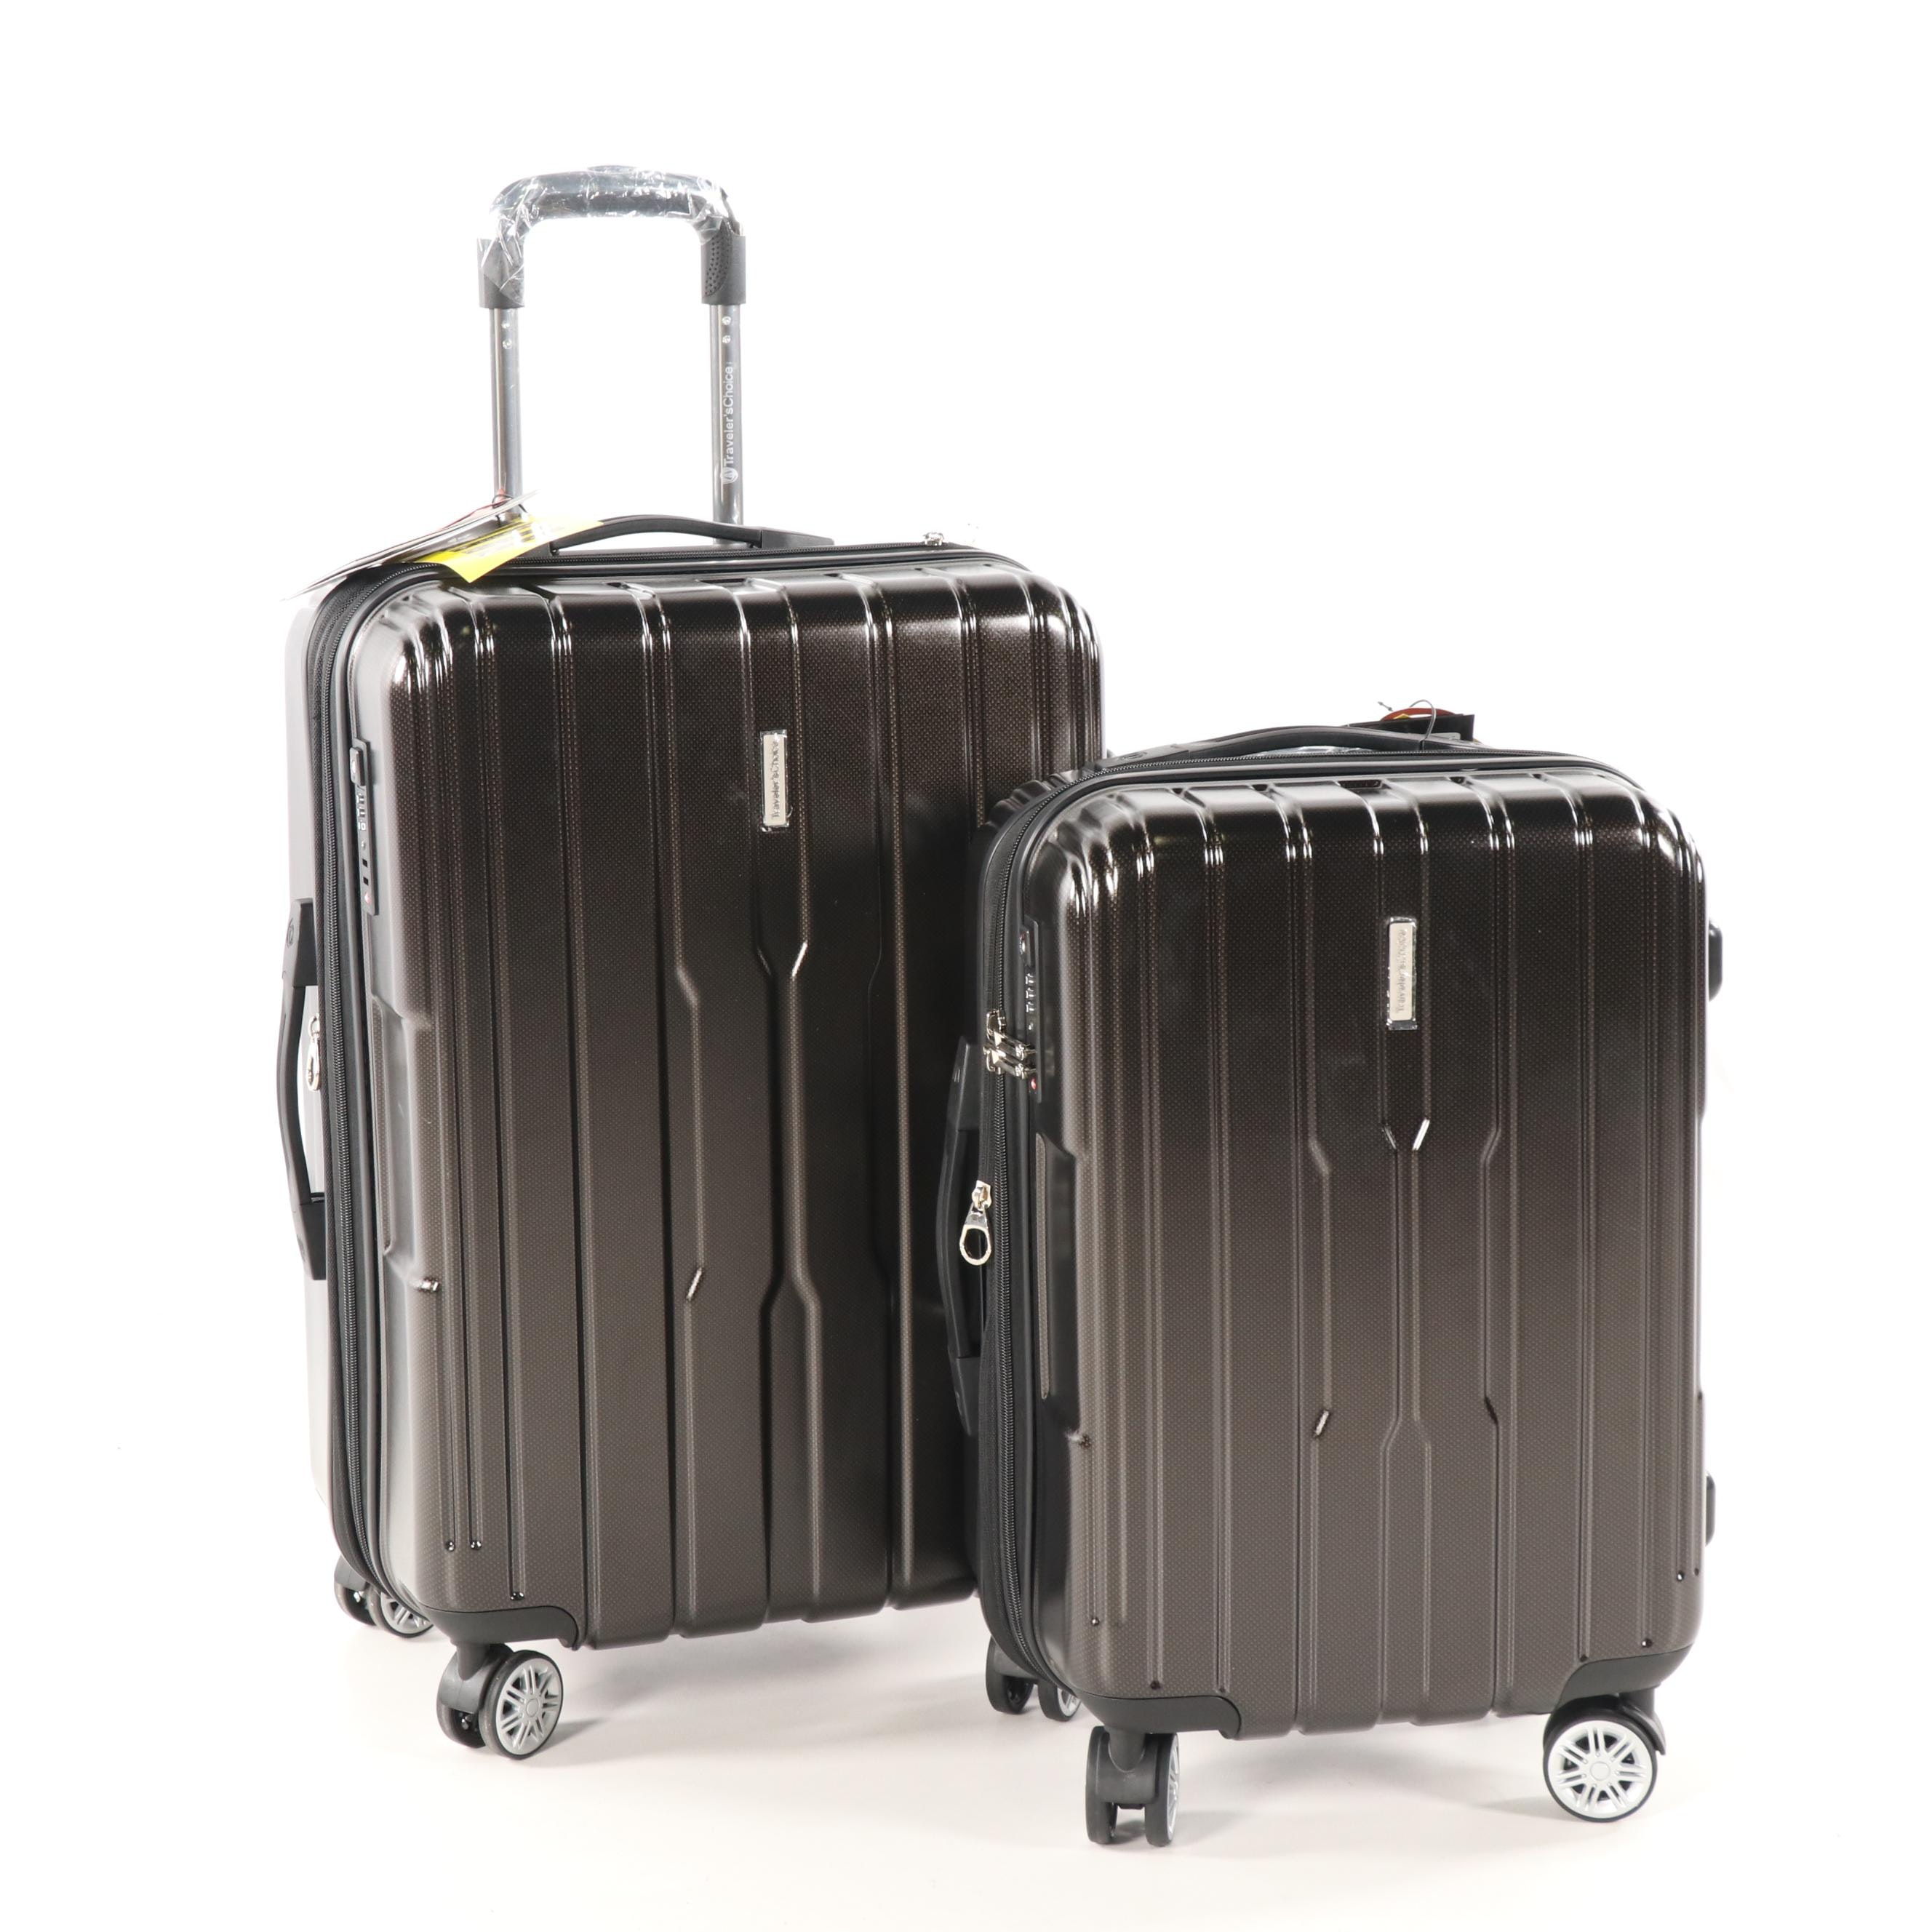 Traveler's Choice Hardside Spinner Two-Piece Luggage Set